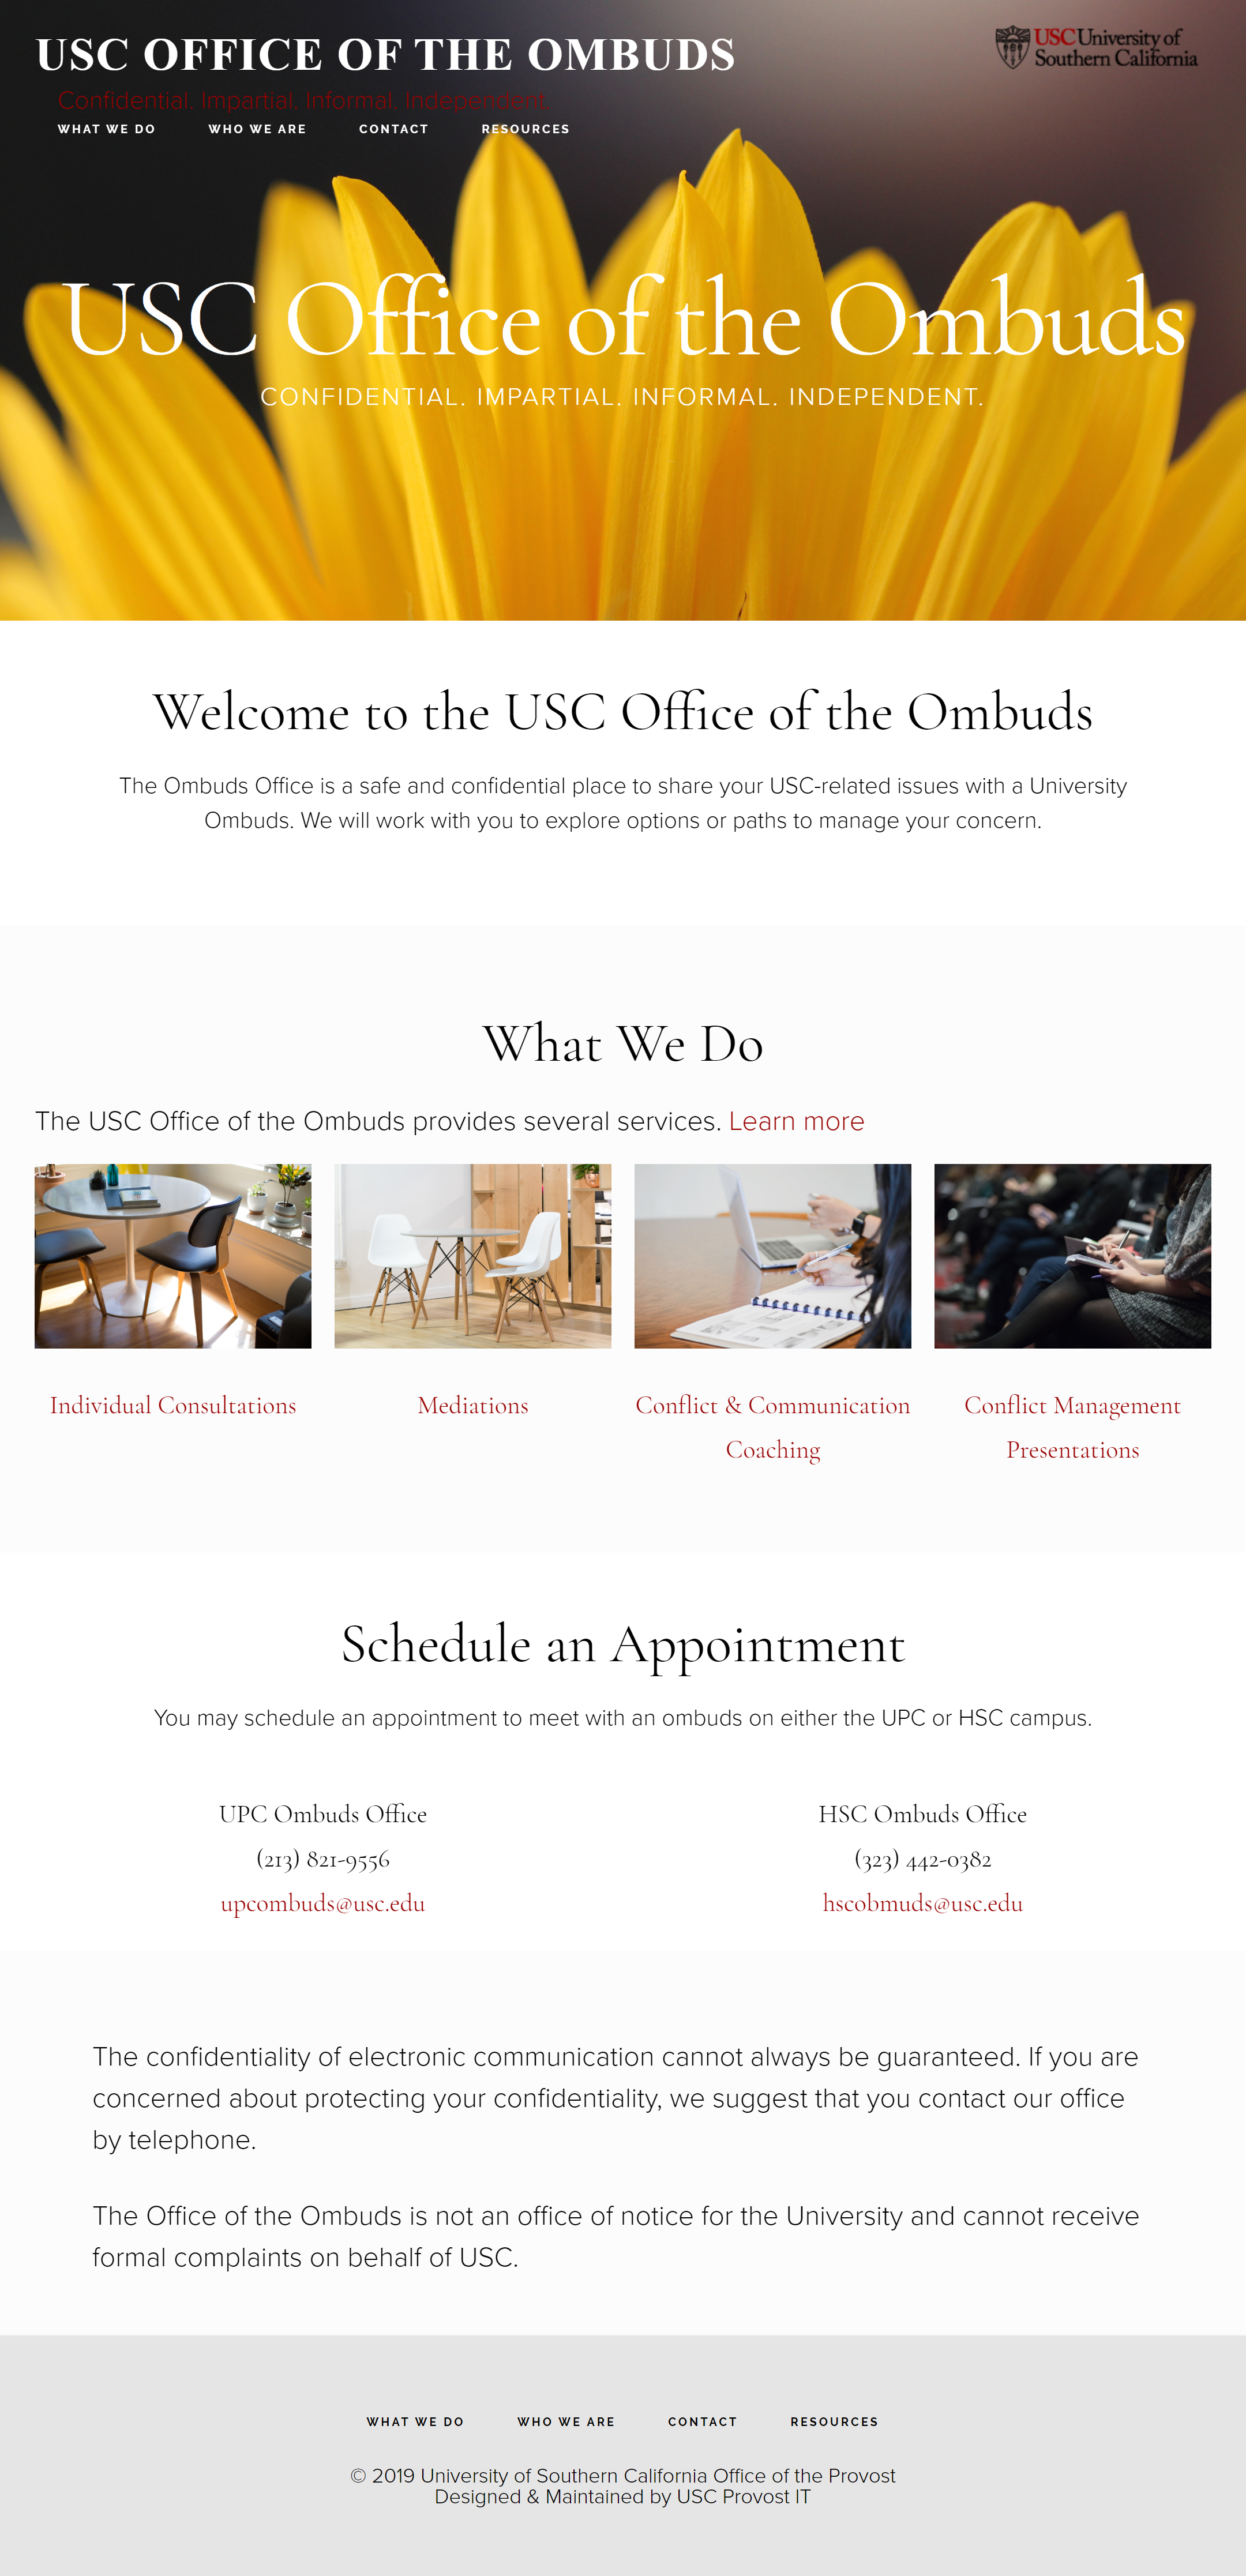 Full size image USC Office of the Ombuds Home Page